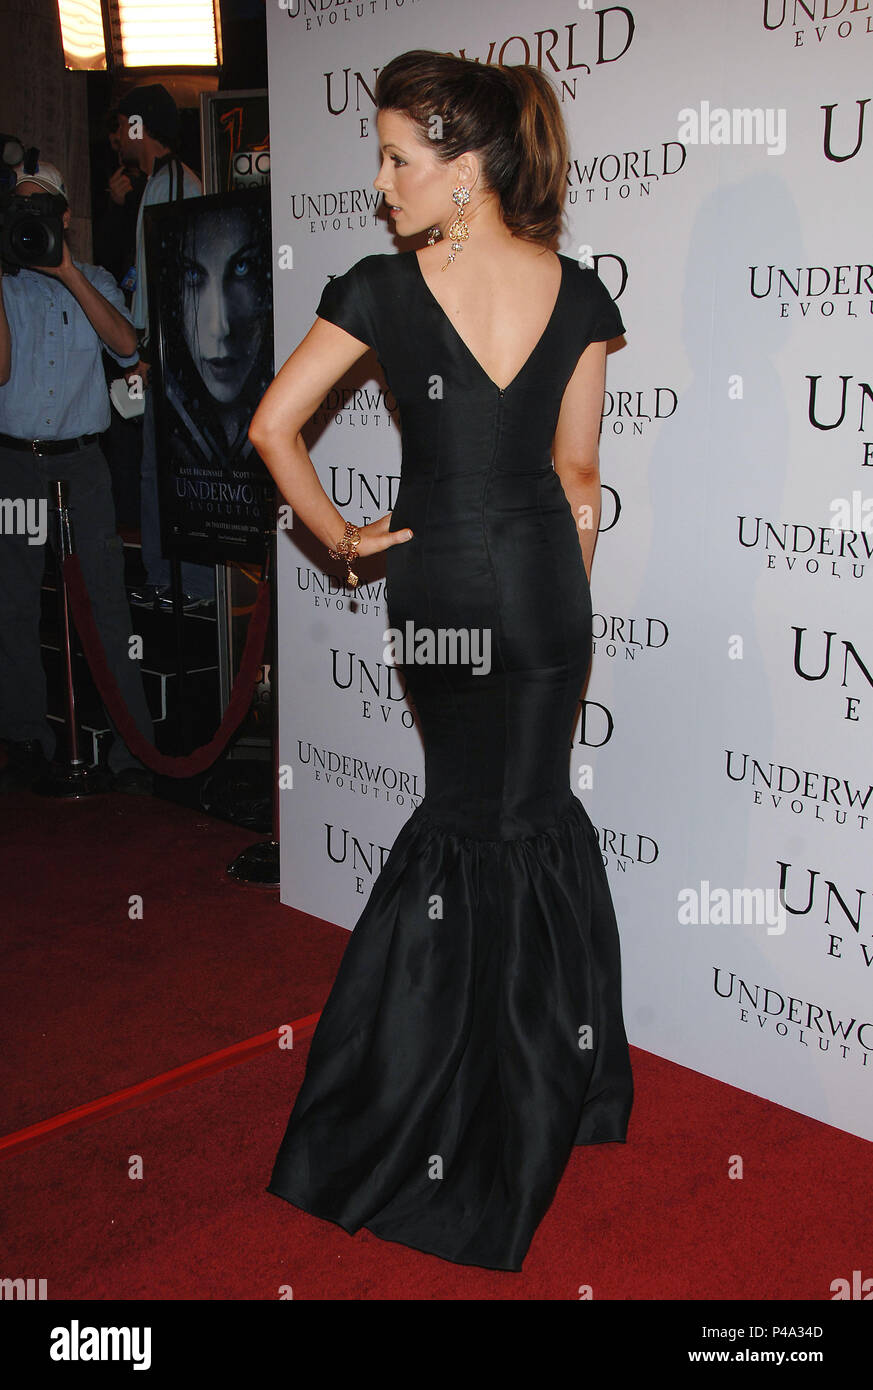 Kate Beckinsale arriving at the UNDERWORLD EVOLUTION Premiere at the Arclight Theatre in Los Angeles. January 11, 2006.03_BeckinsaleKate148 Red Carpet Event, Vertical, USA, Film Industry, Celebrities,  Photography, Bestof, Arts Culture and Entertainment, Topix Celebrities fashion /  Vertical, Best of, Event in Hollywood Life - California,  Red Carpet and backstage, USA, Film Industry, Celebrities,  movie celebrities, TV celebrities, Music celebrities, Photography, Bestof, Arts Culture and Entertainment,  Topix, vertical, one person,, from the year , 2005, inquiry tsuni@Gamma-USA.com Fashion -  - Stock Image